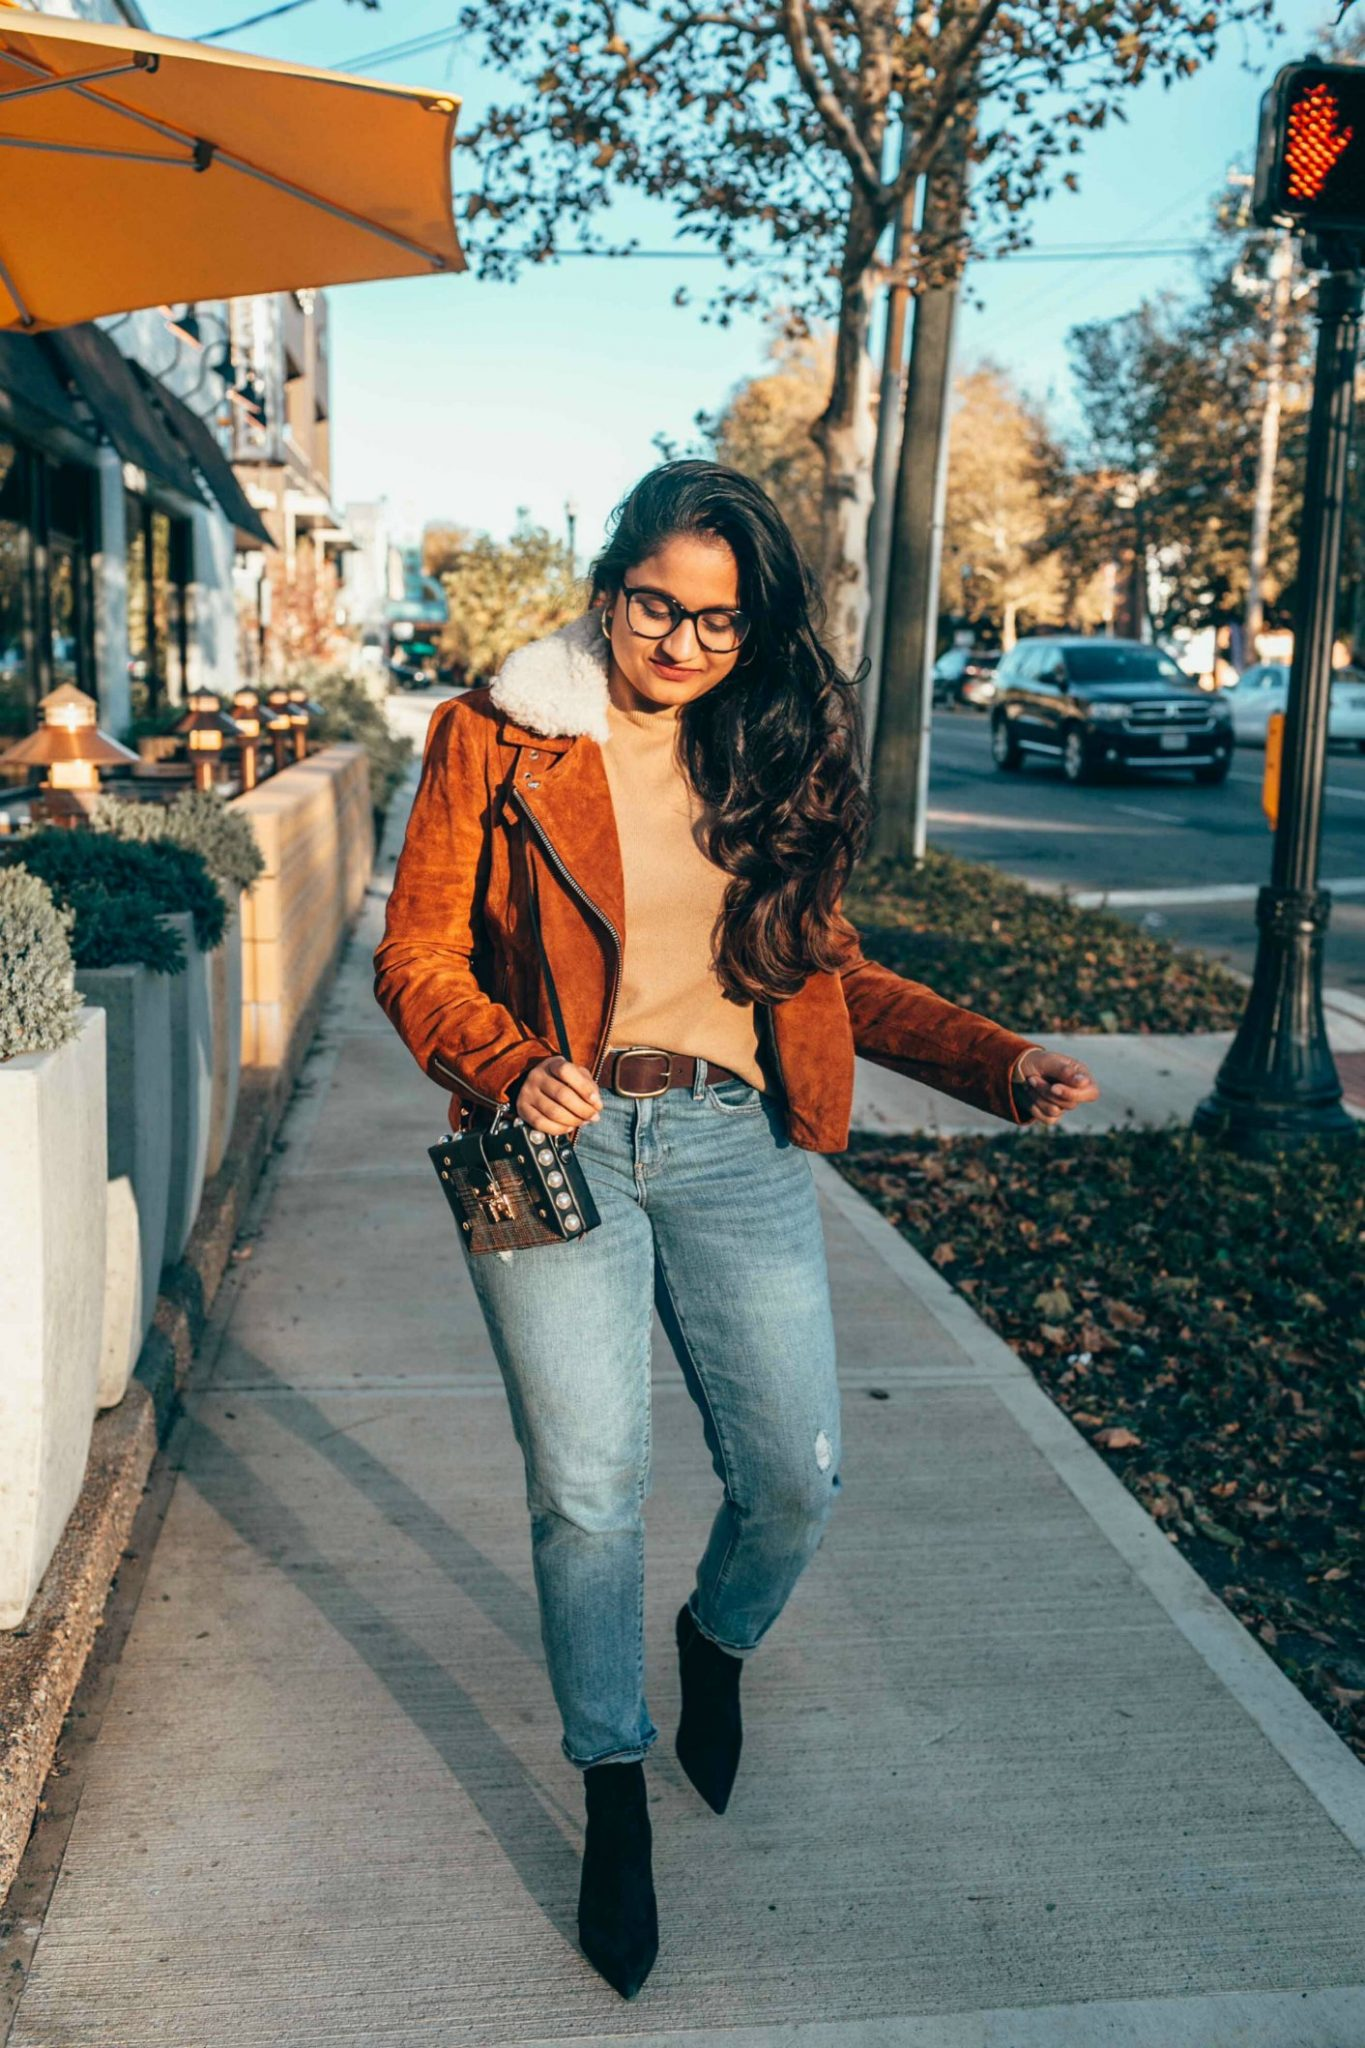 https://www.dreamingloud.com/wp-content/uploads/2018/11/How-to-wear-or-style-suede-jacket-featured-by-top-Ohio-fashion-blog-Dreaming-Loud.jpg